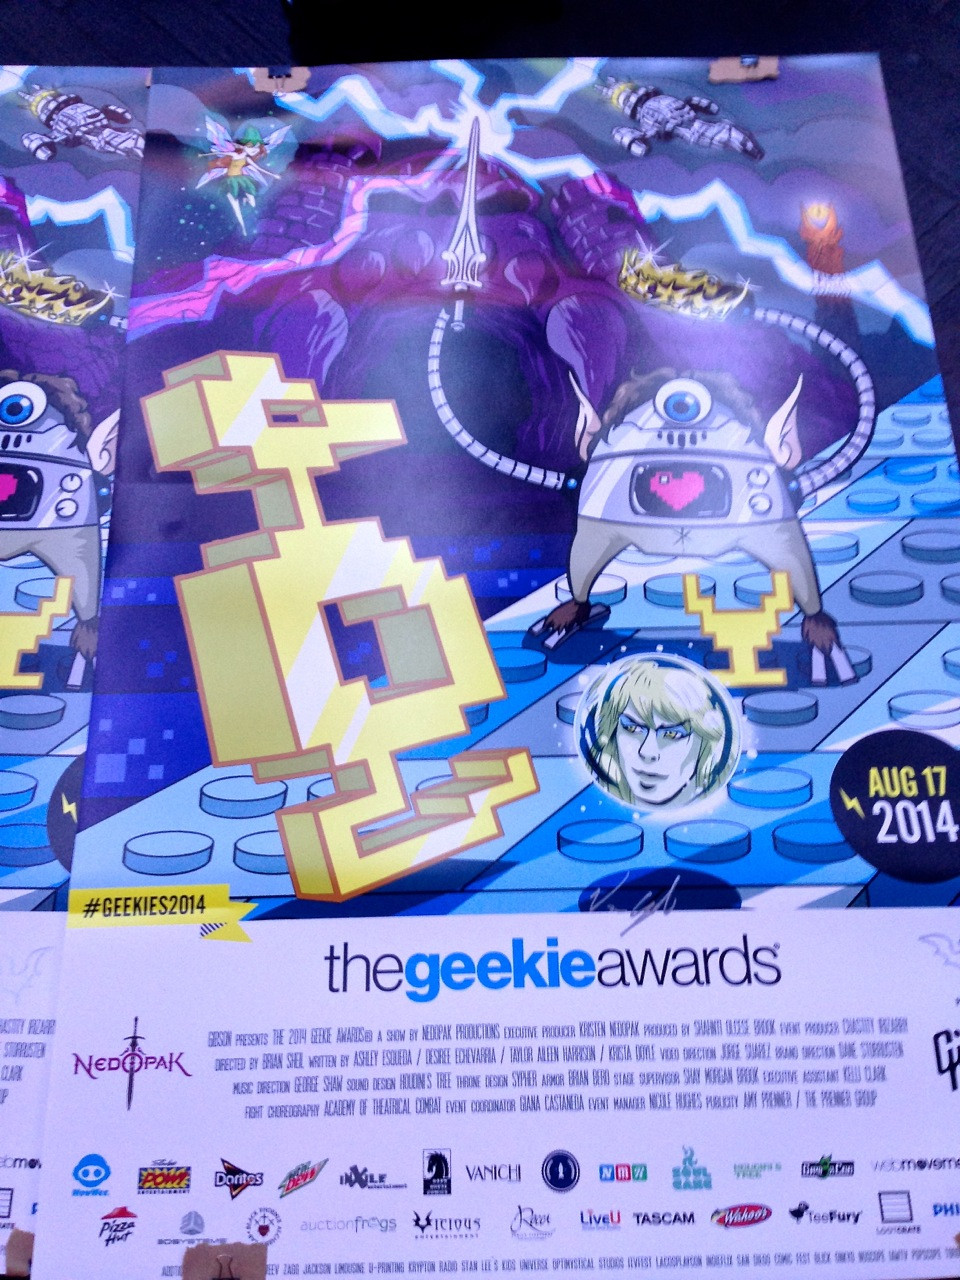 2014 Geekie Awards program